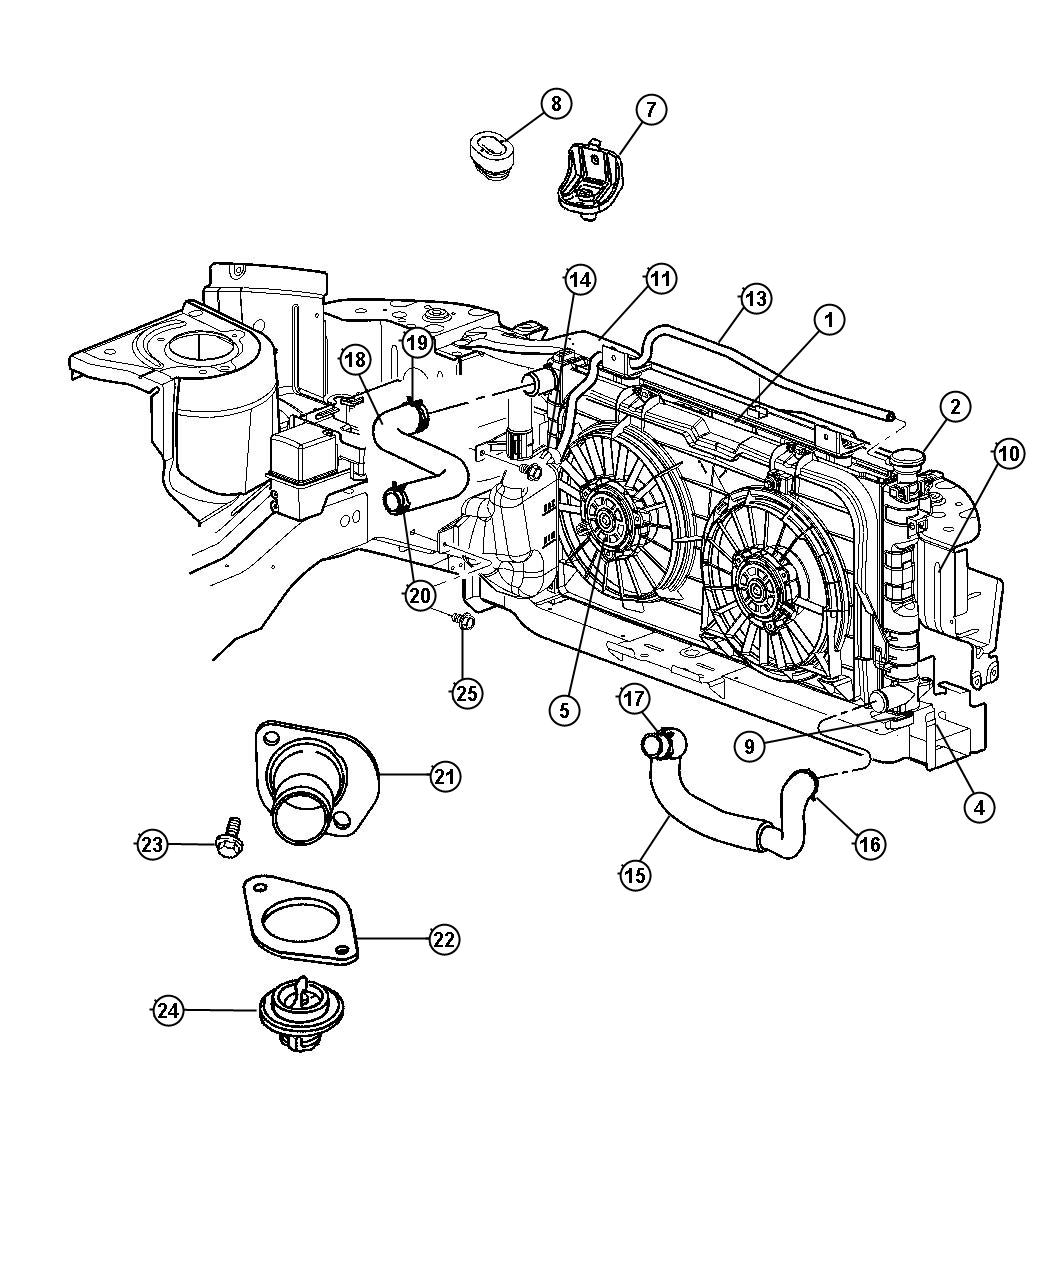 Jeep Liberty Radiator Engine Cooling Up To 01 31